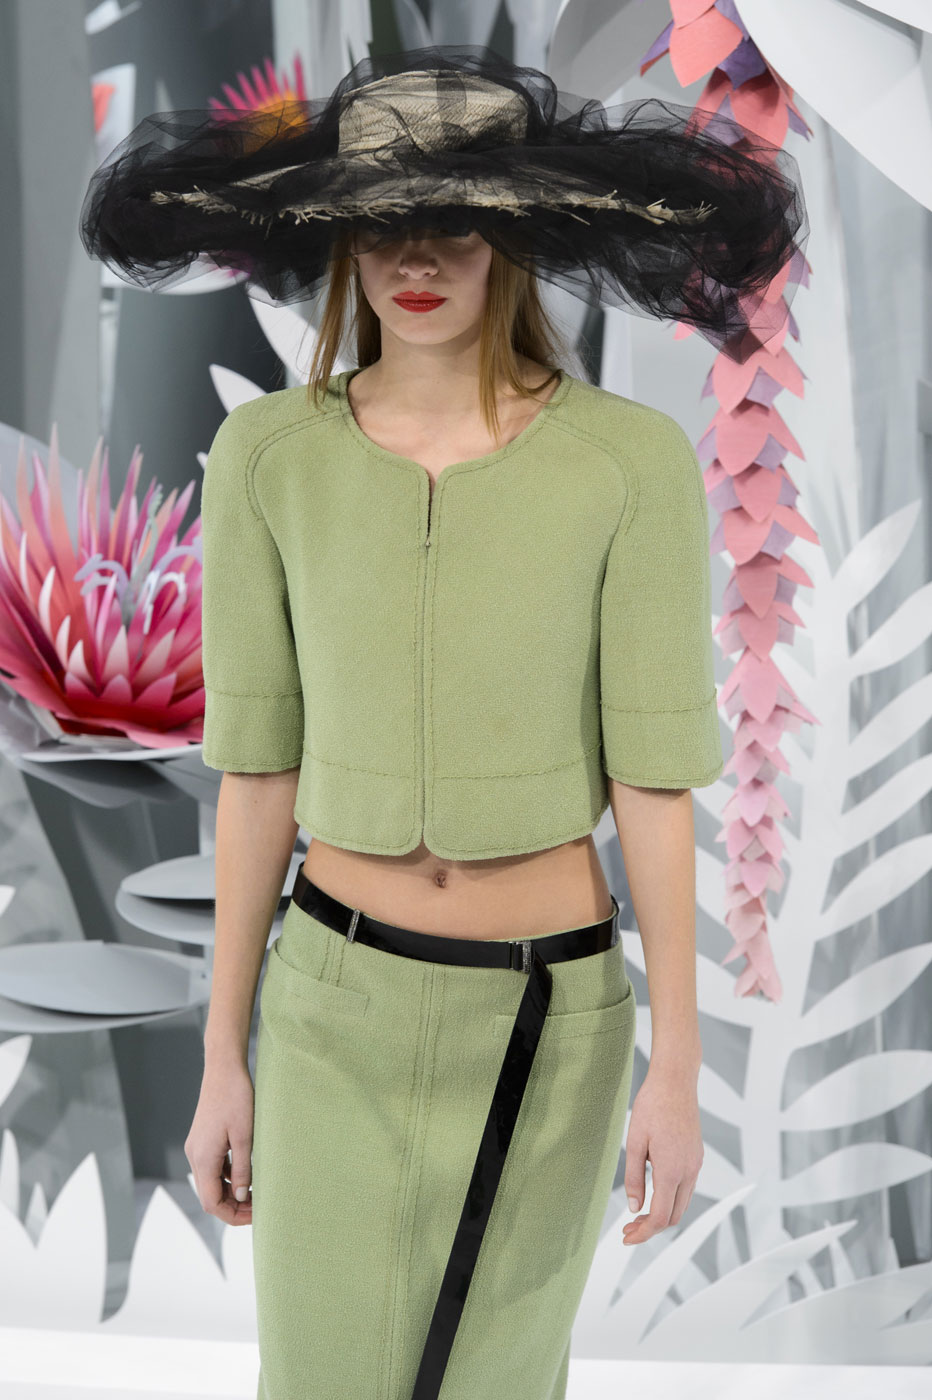 Chanel-fashion-runway-show-haute-couture-paris-spring-summer-2015-the-impression-018